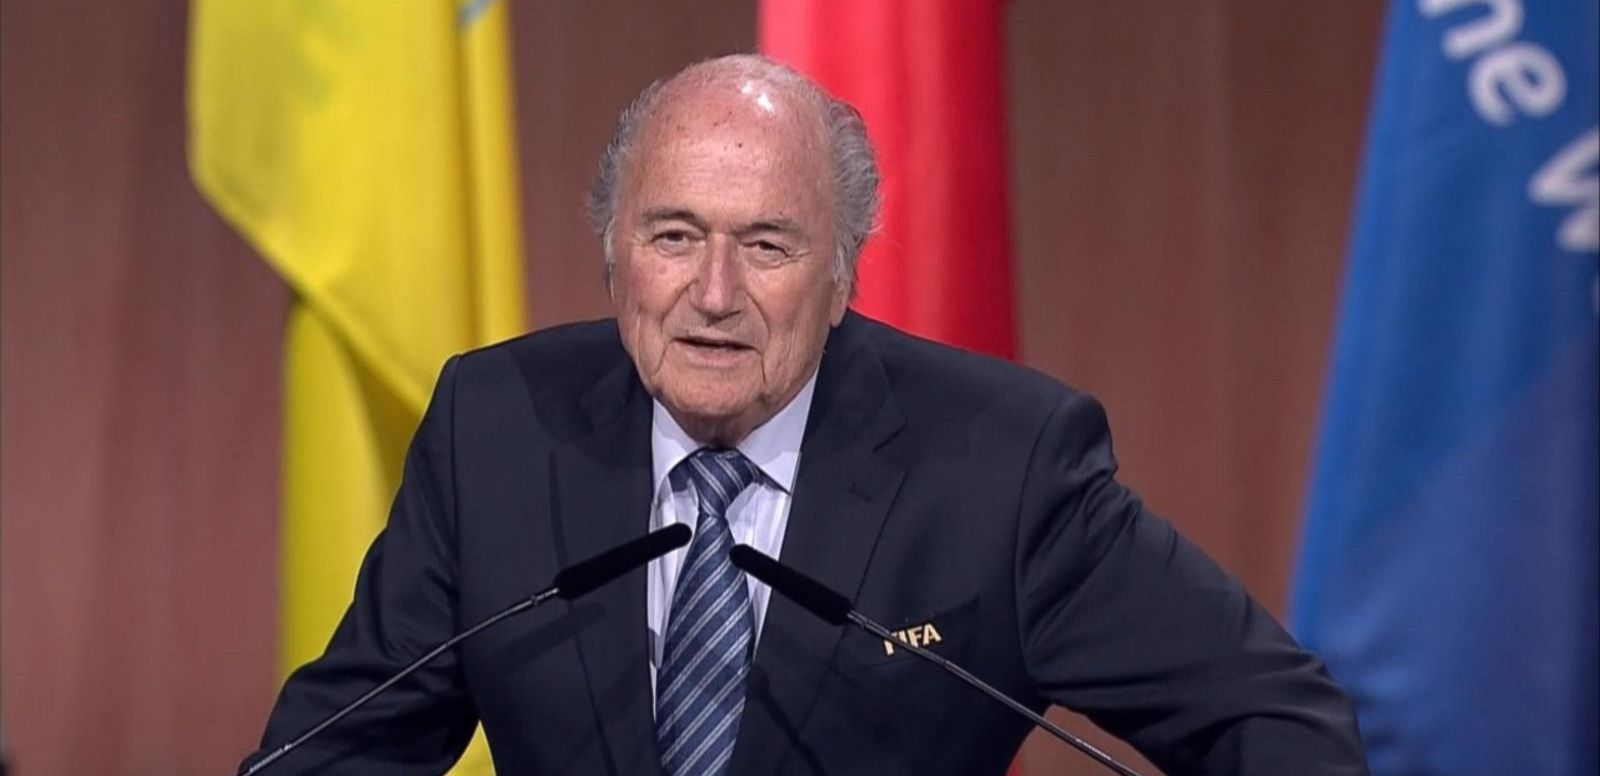 VIDEO: Sepp Blatter, the embattled of soccer's FIFA, was re-elected to a fifth term as president, despite the corruption scandal surrounding the organization.